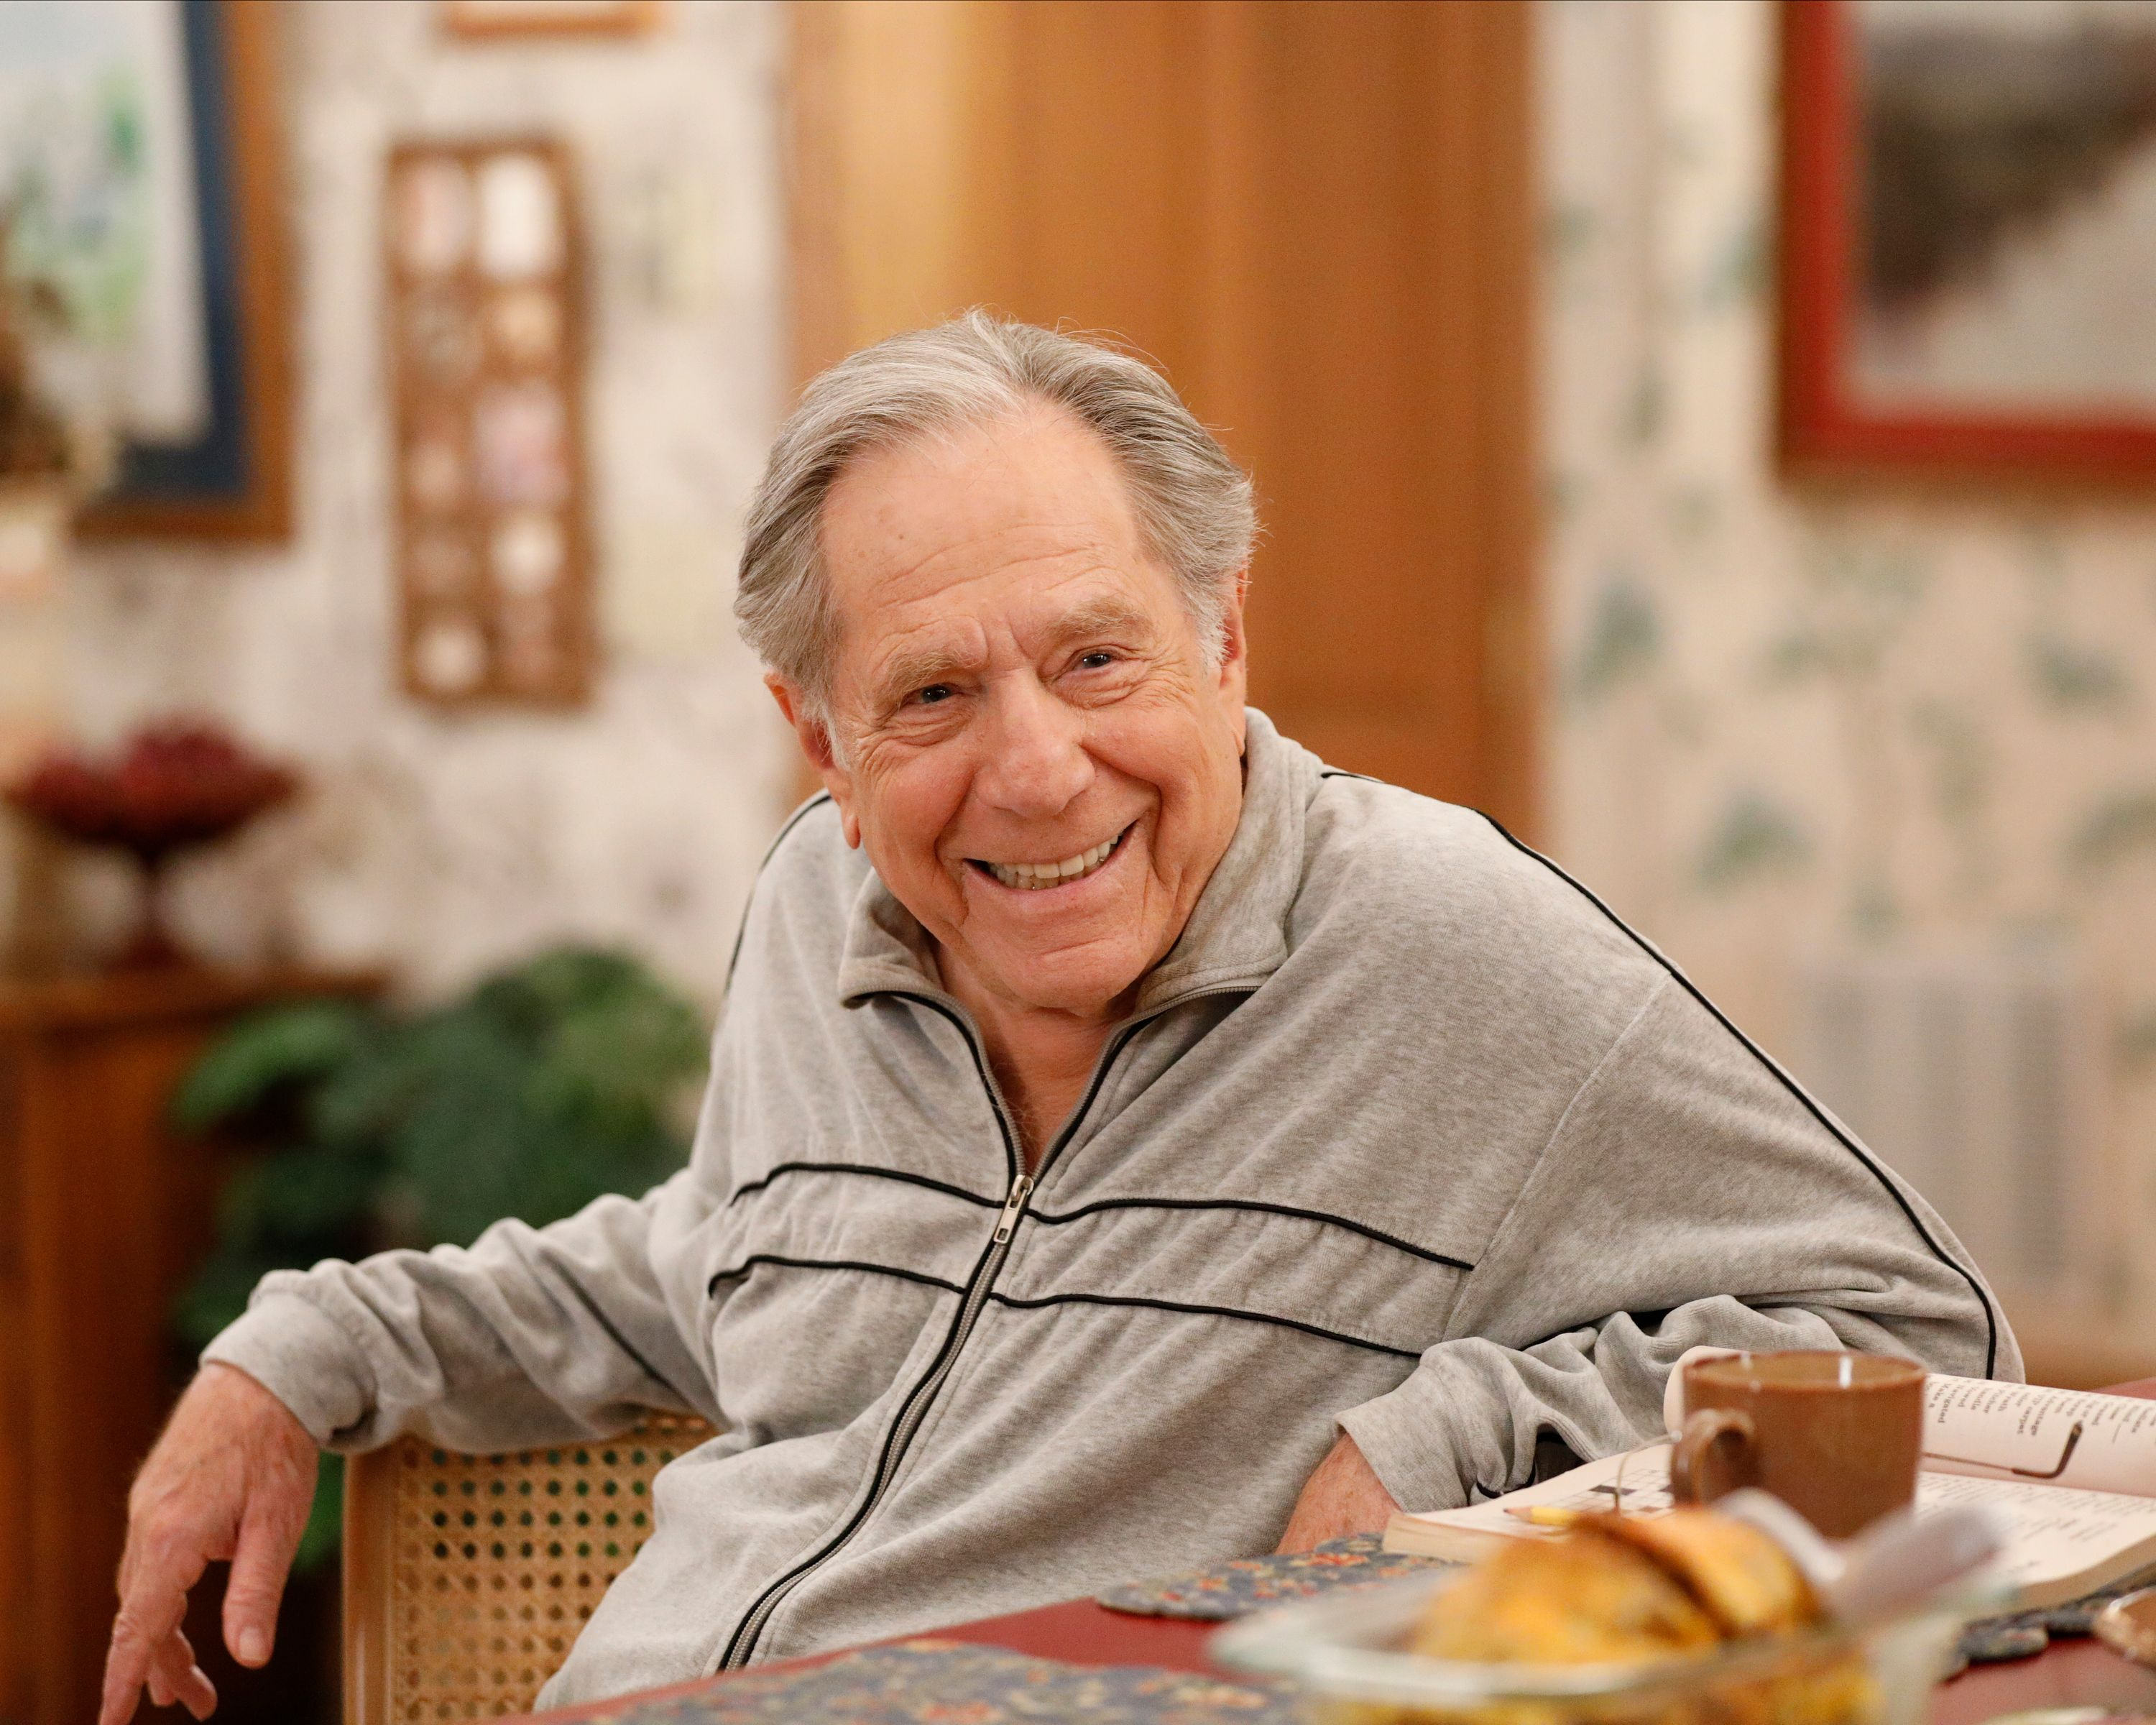 """Late actor George Segal during a scene from season 7 of ABC's """"The Goldbergs"""" 